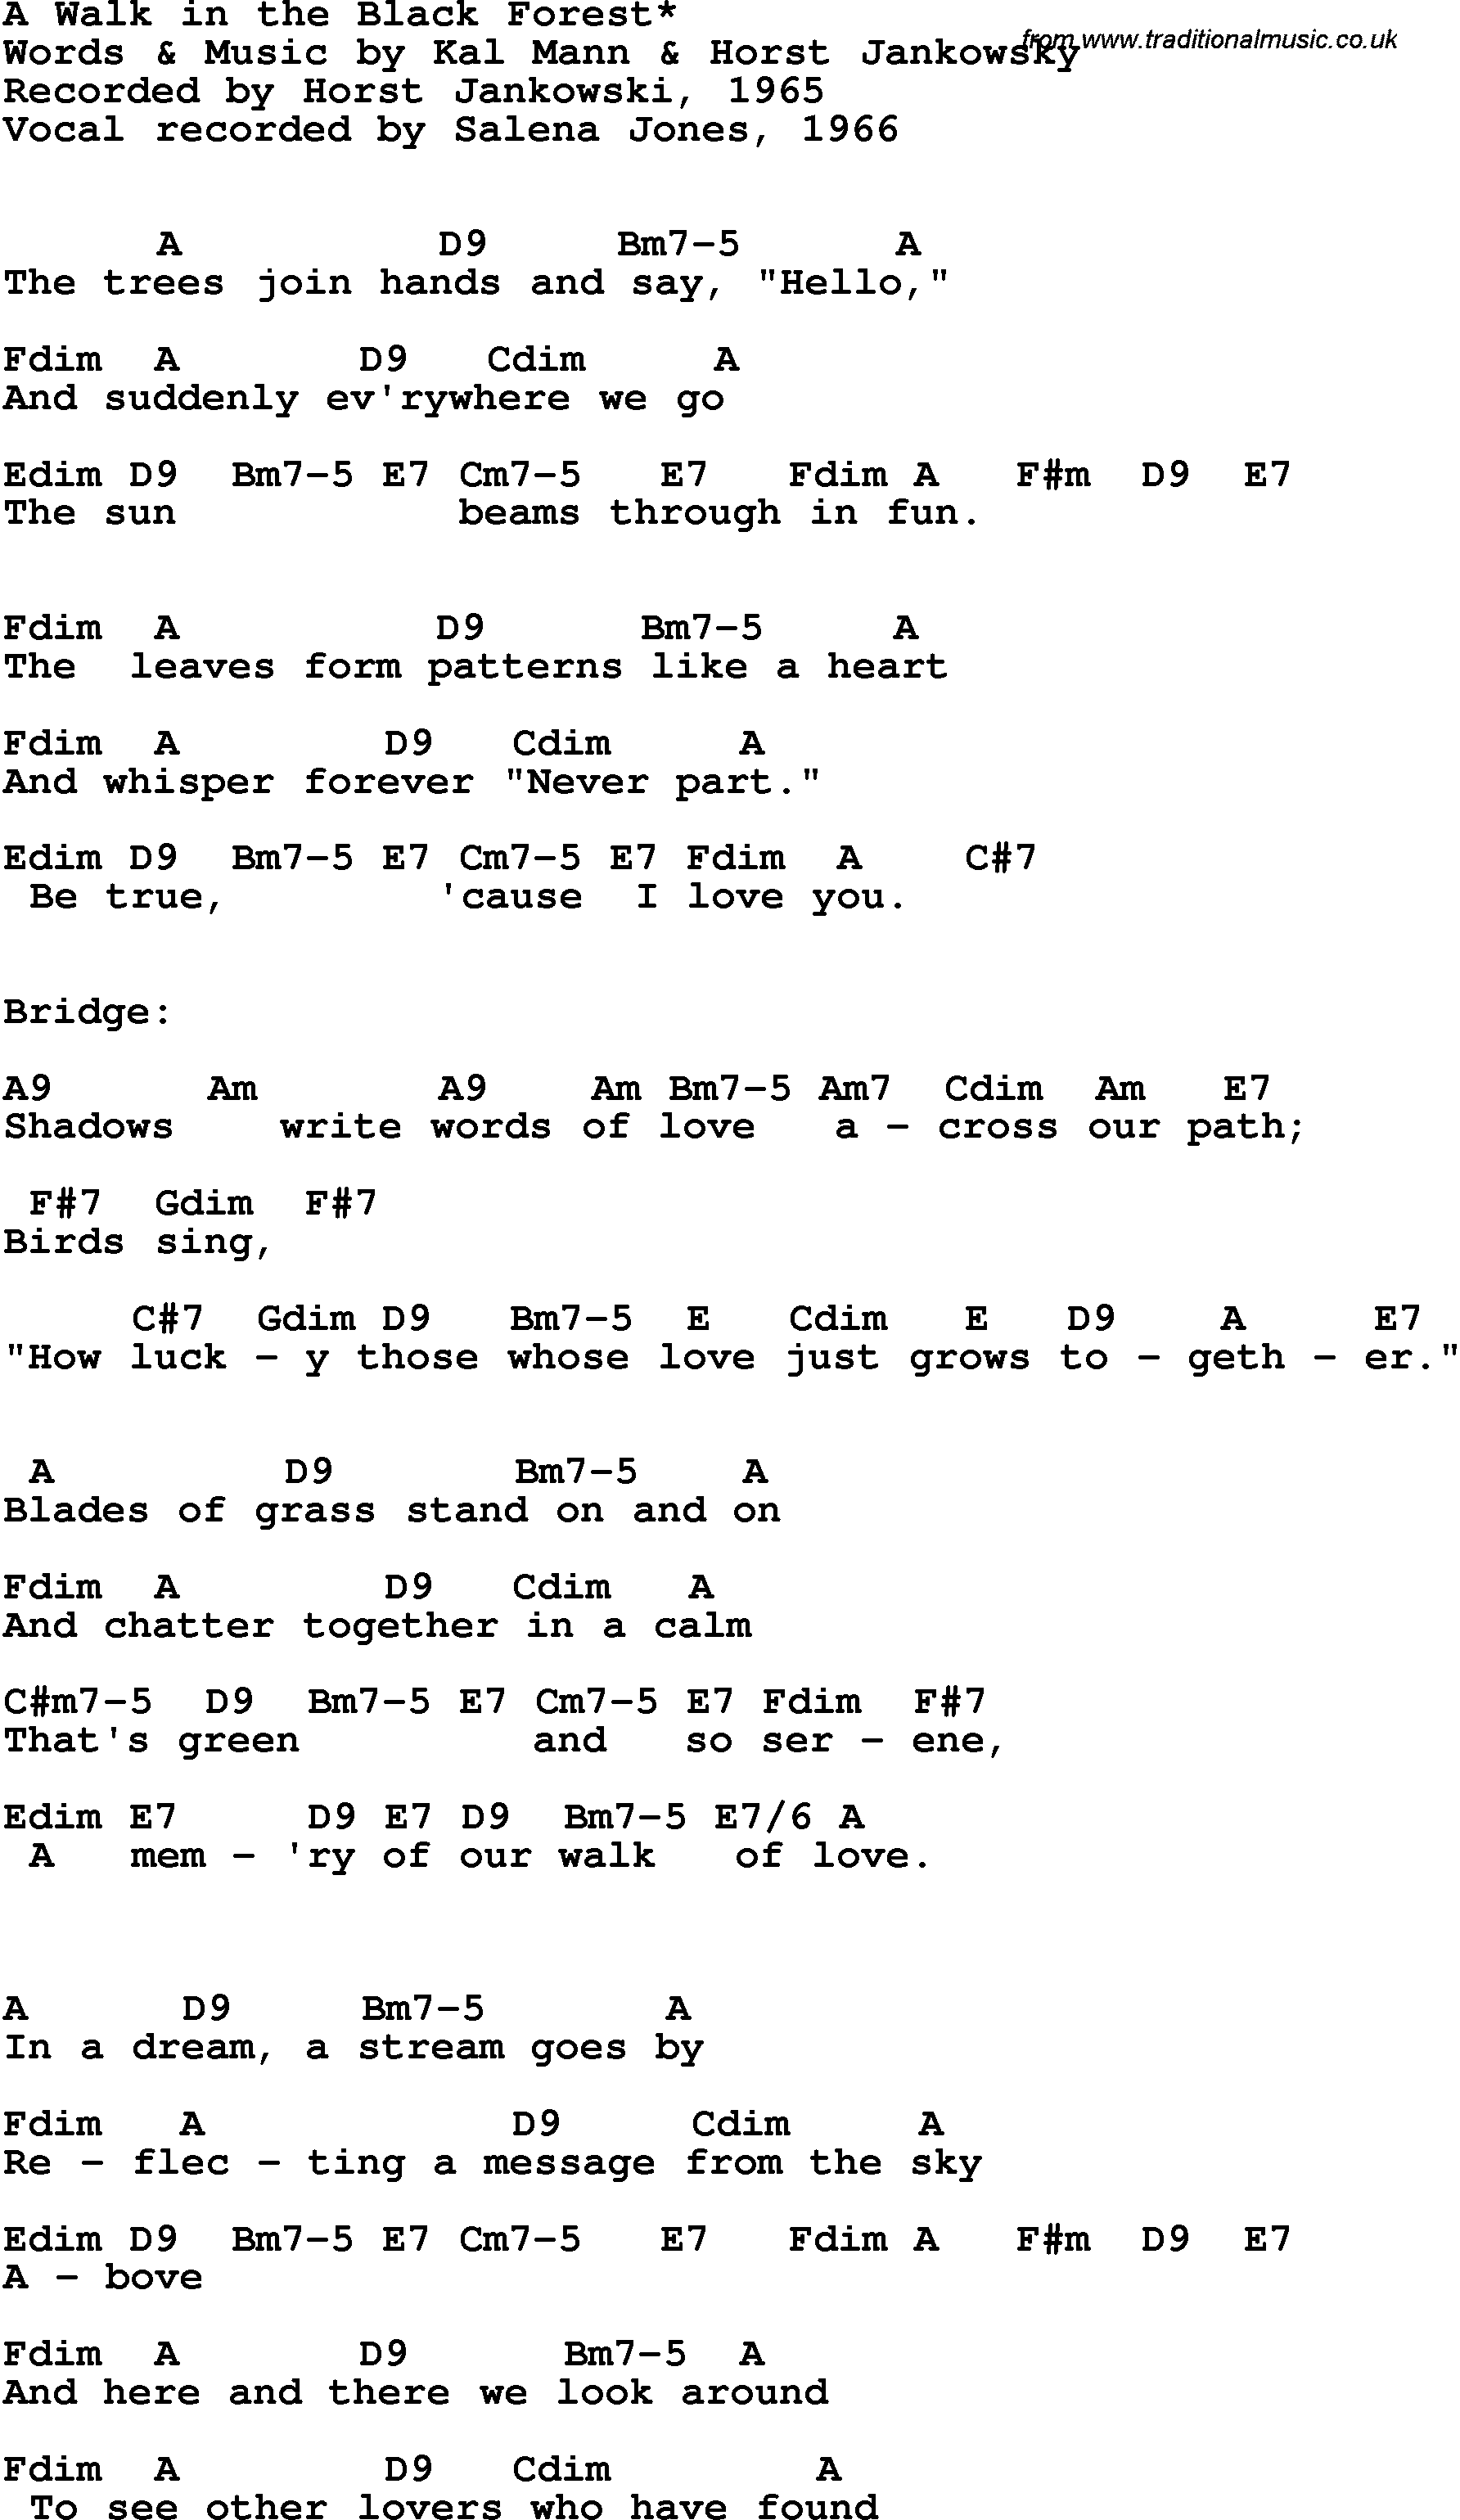 Song Lyrics With Guitar Chords For A Walk In The Black Forest